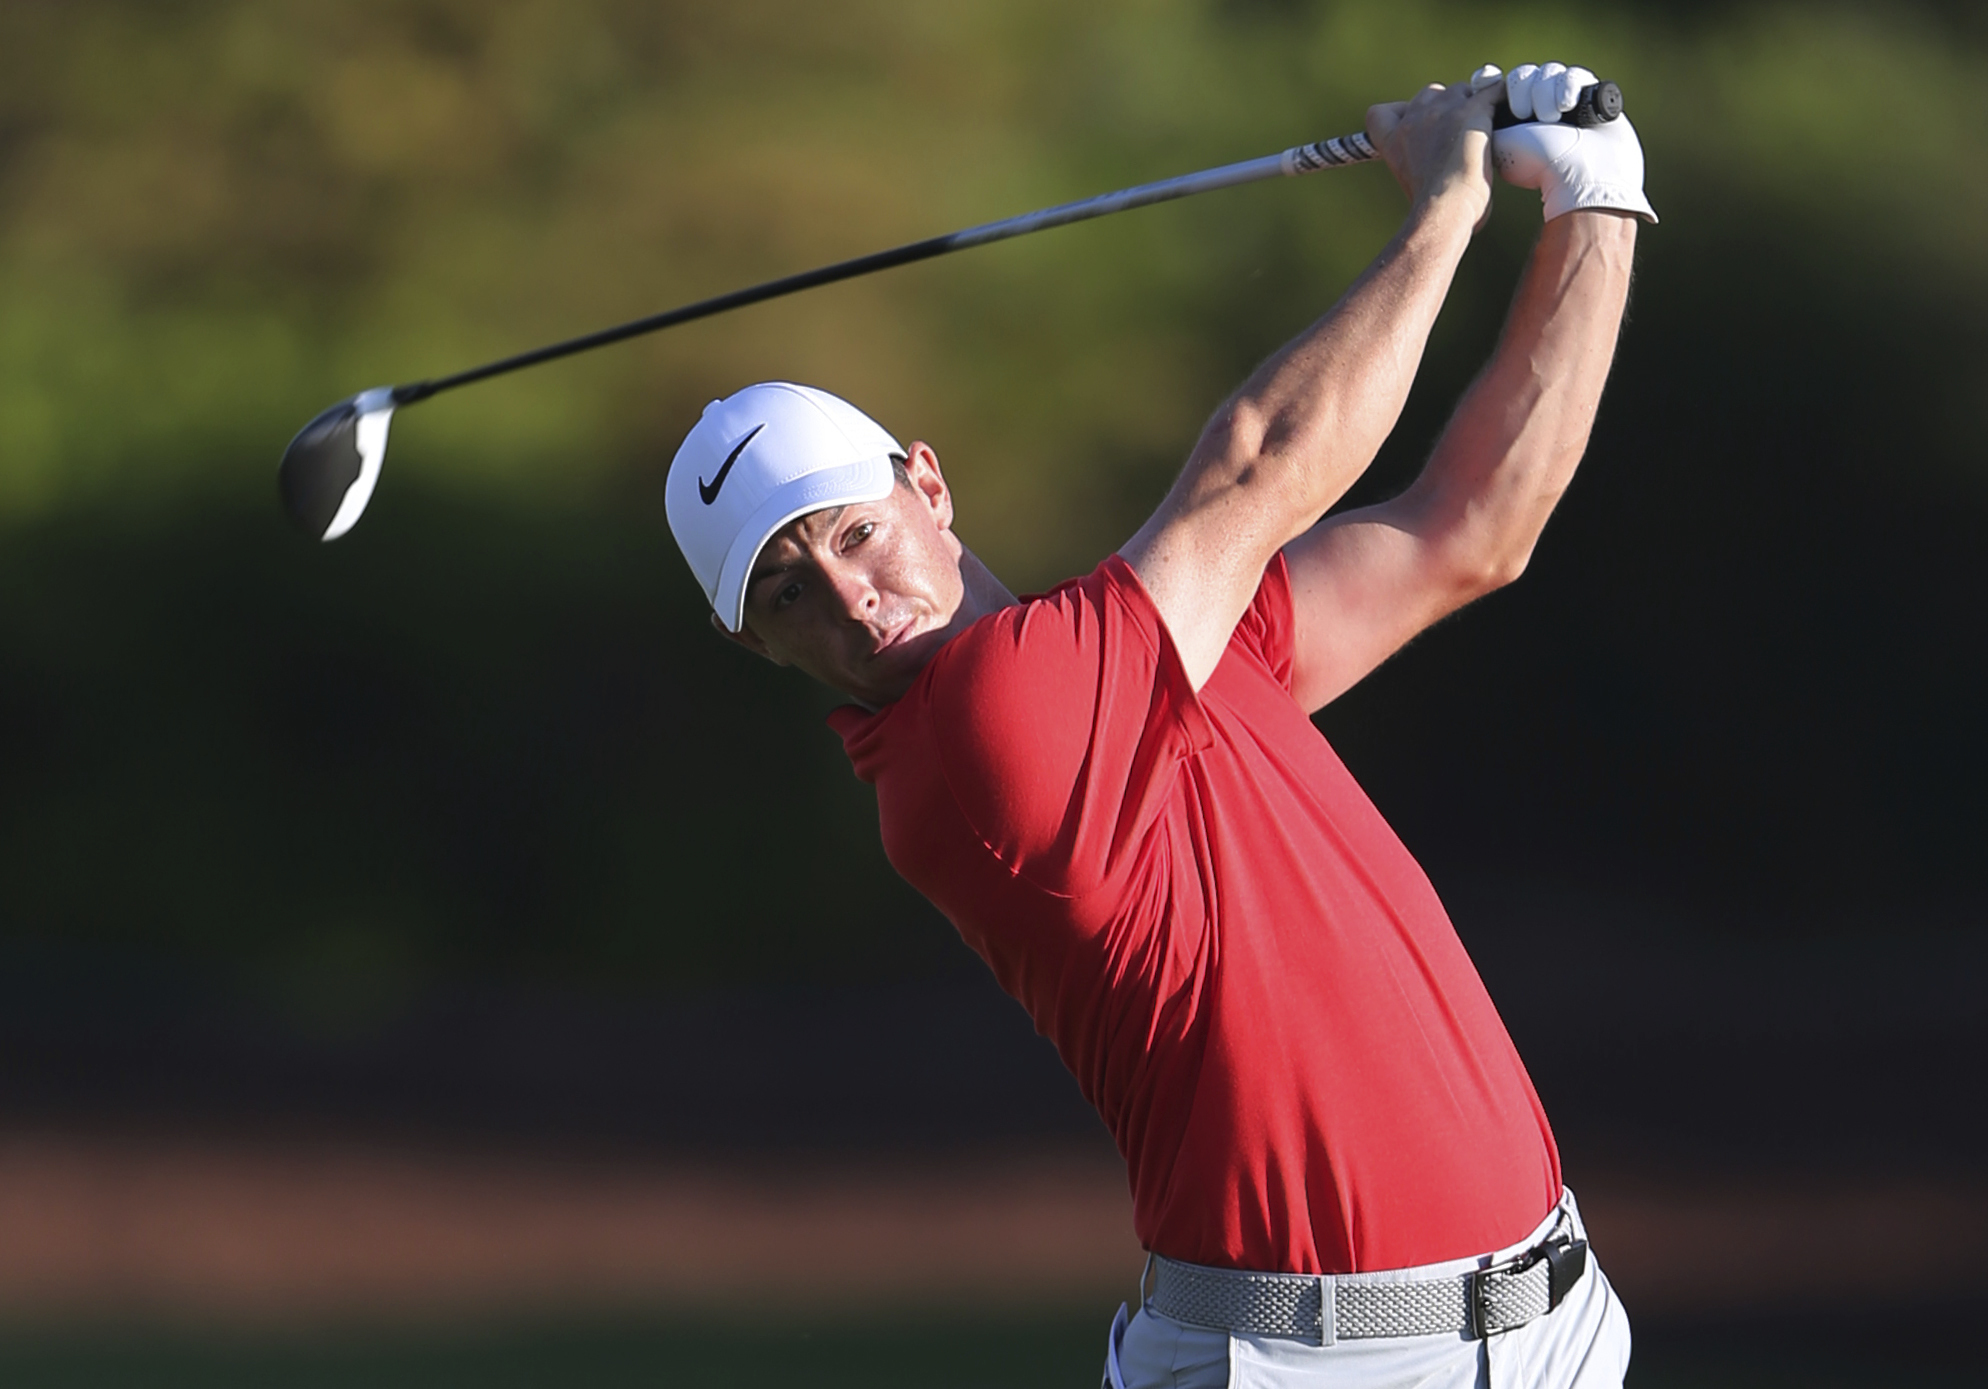 Rory McIlroy hits his drive during the 2nd round of the DP World Tour Championship in Dubai.